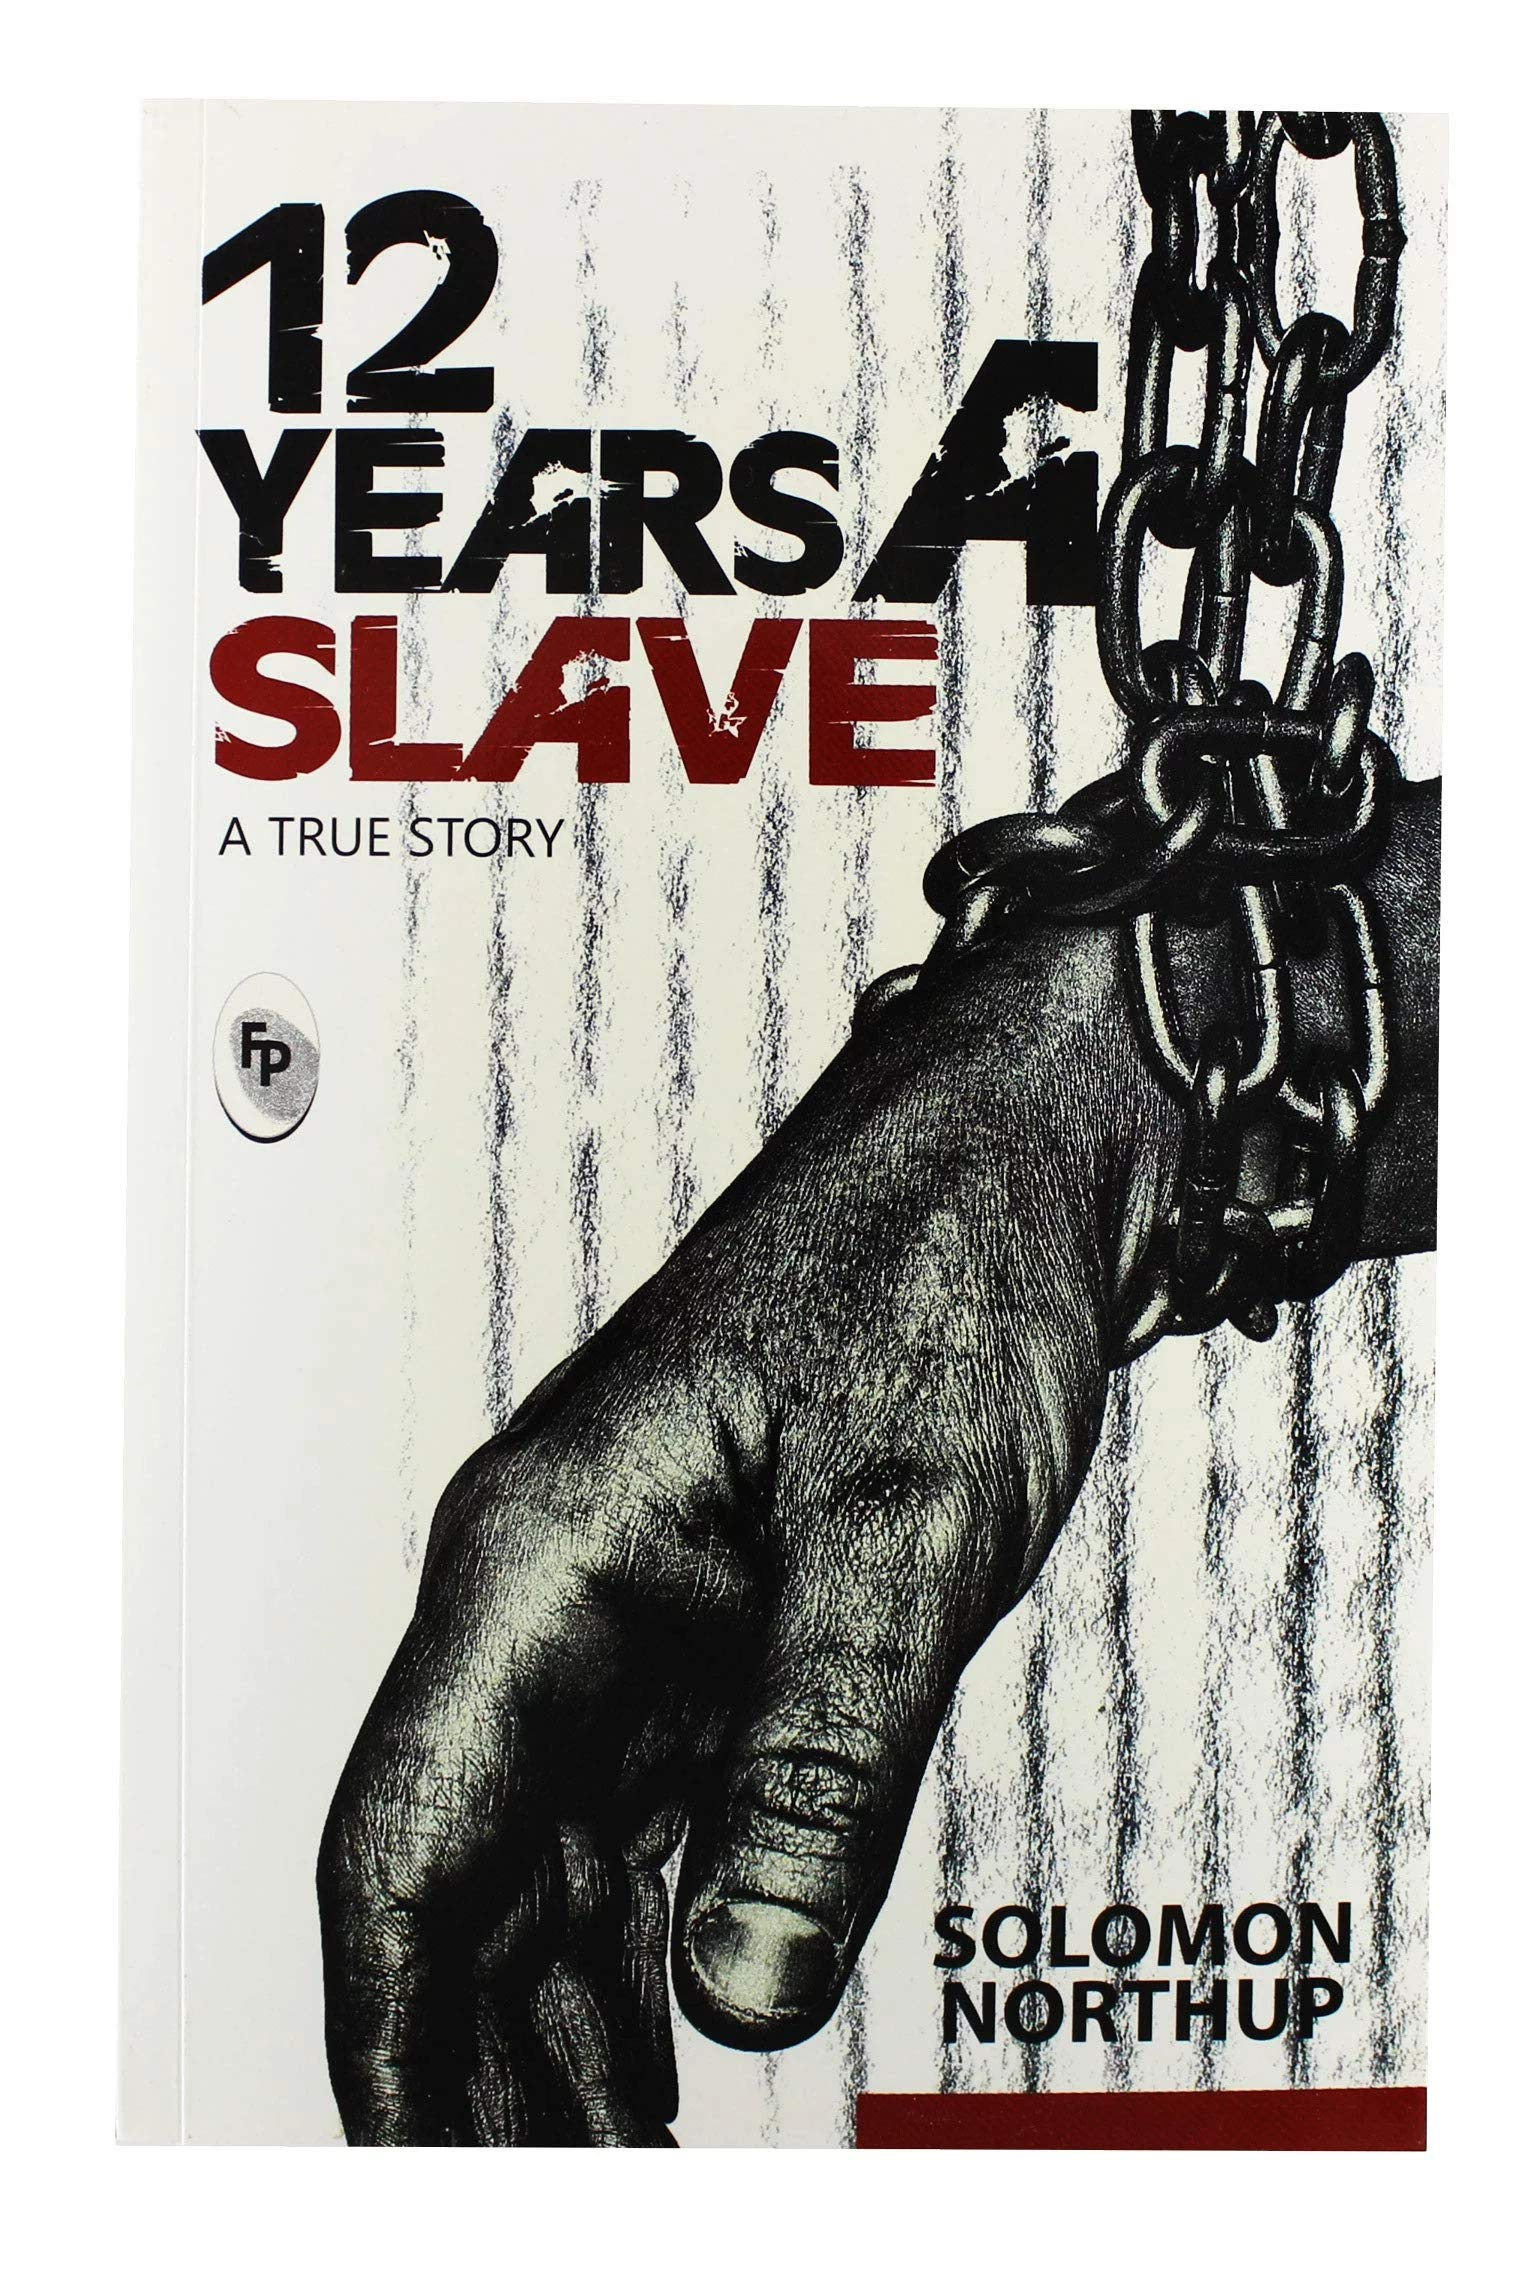 12 Years a Slave: Uncut Original Story by Solomon Northup